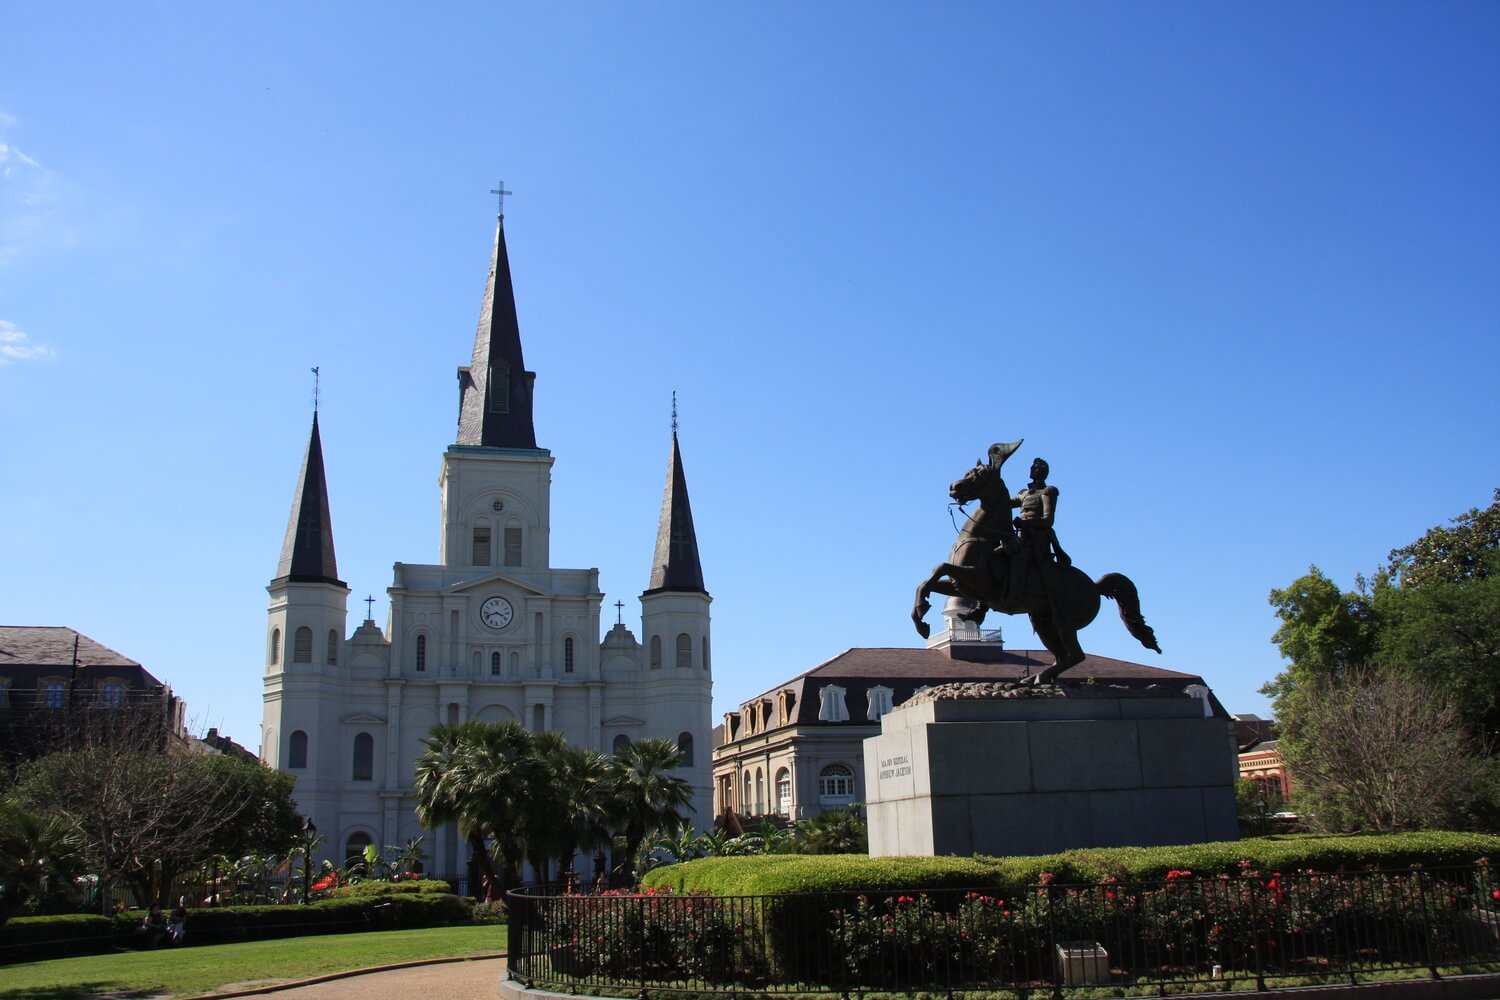 1 Day / 1 Night in New Orleans